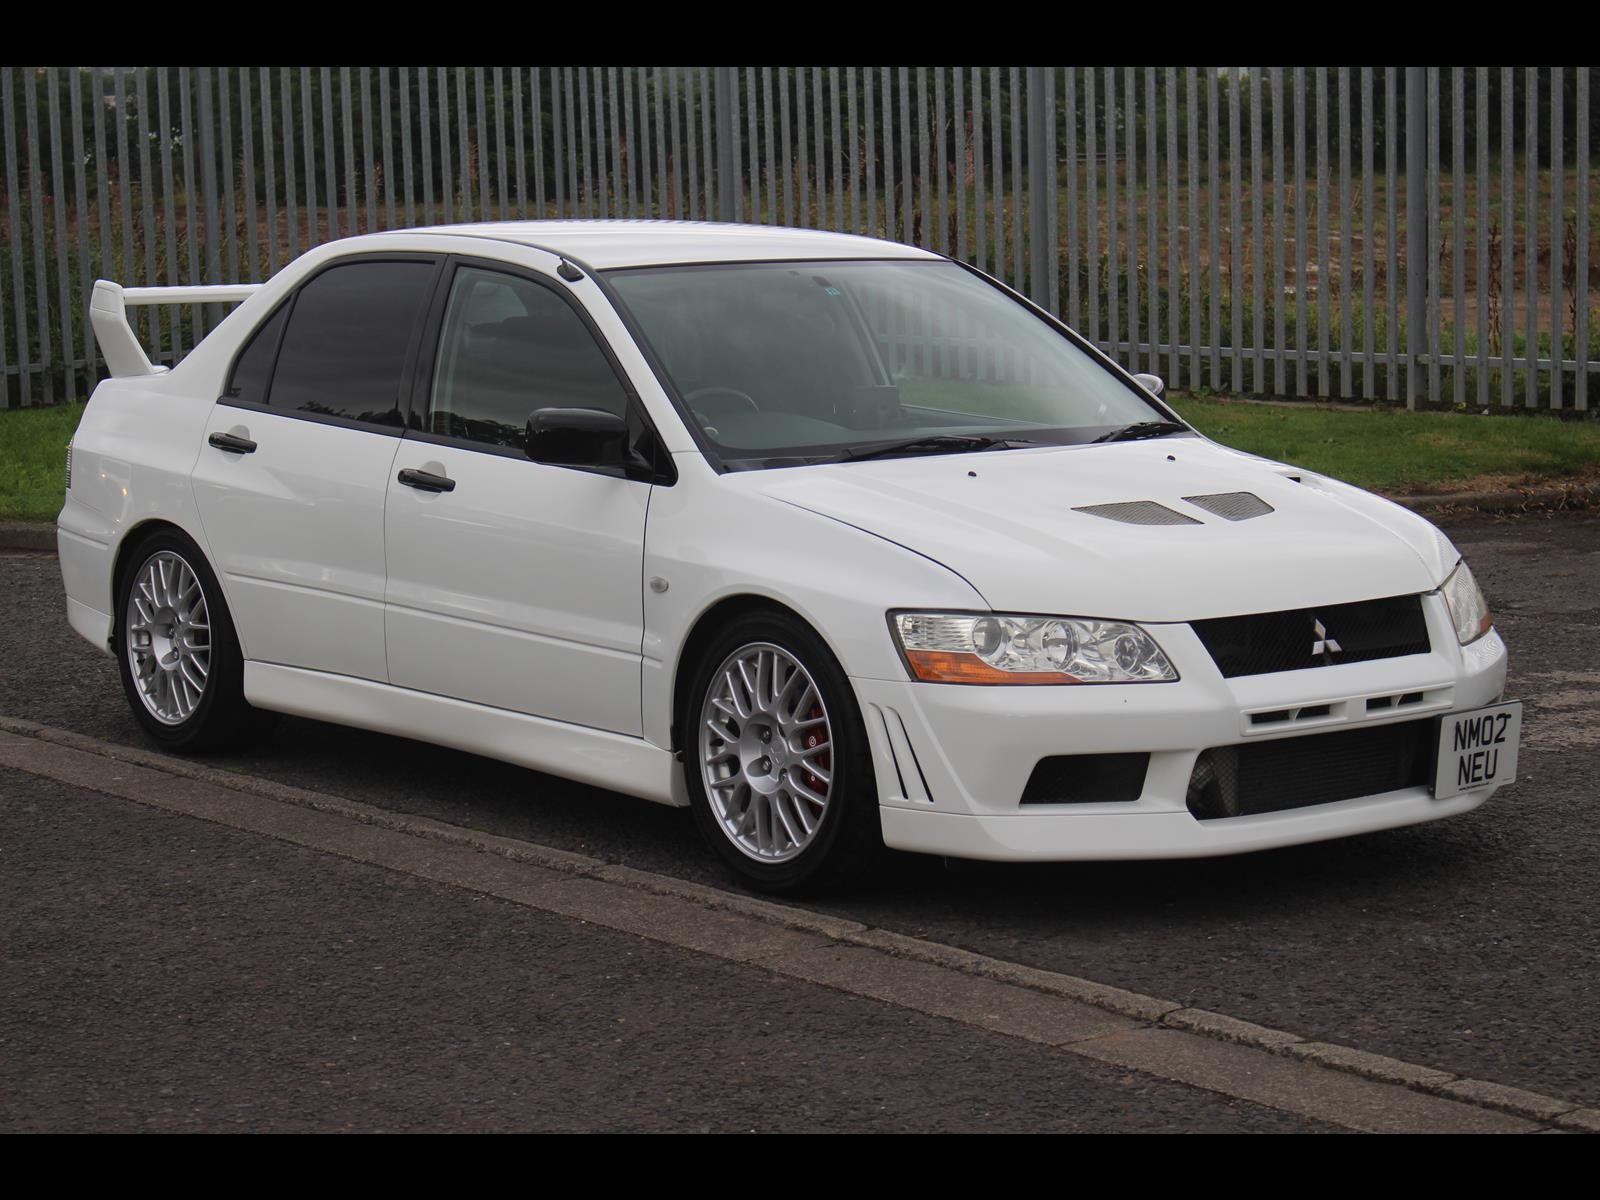 Mitsubishi Lancer Evolution 2.0 2002 photo - 11